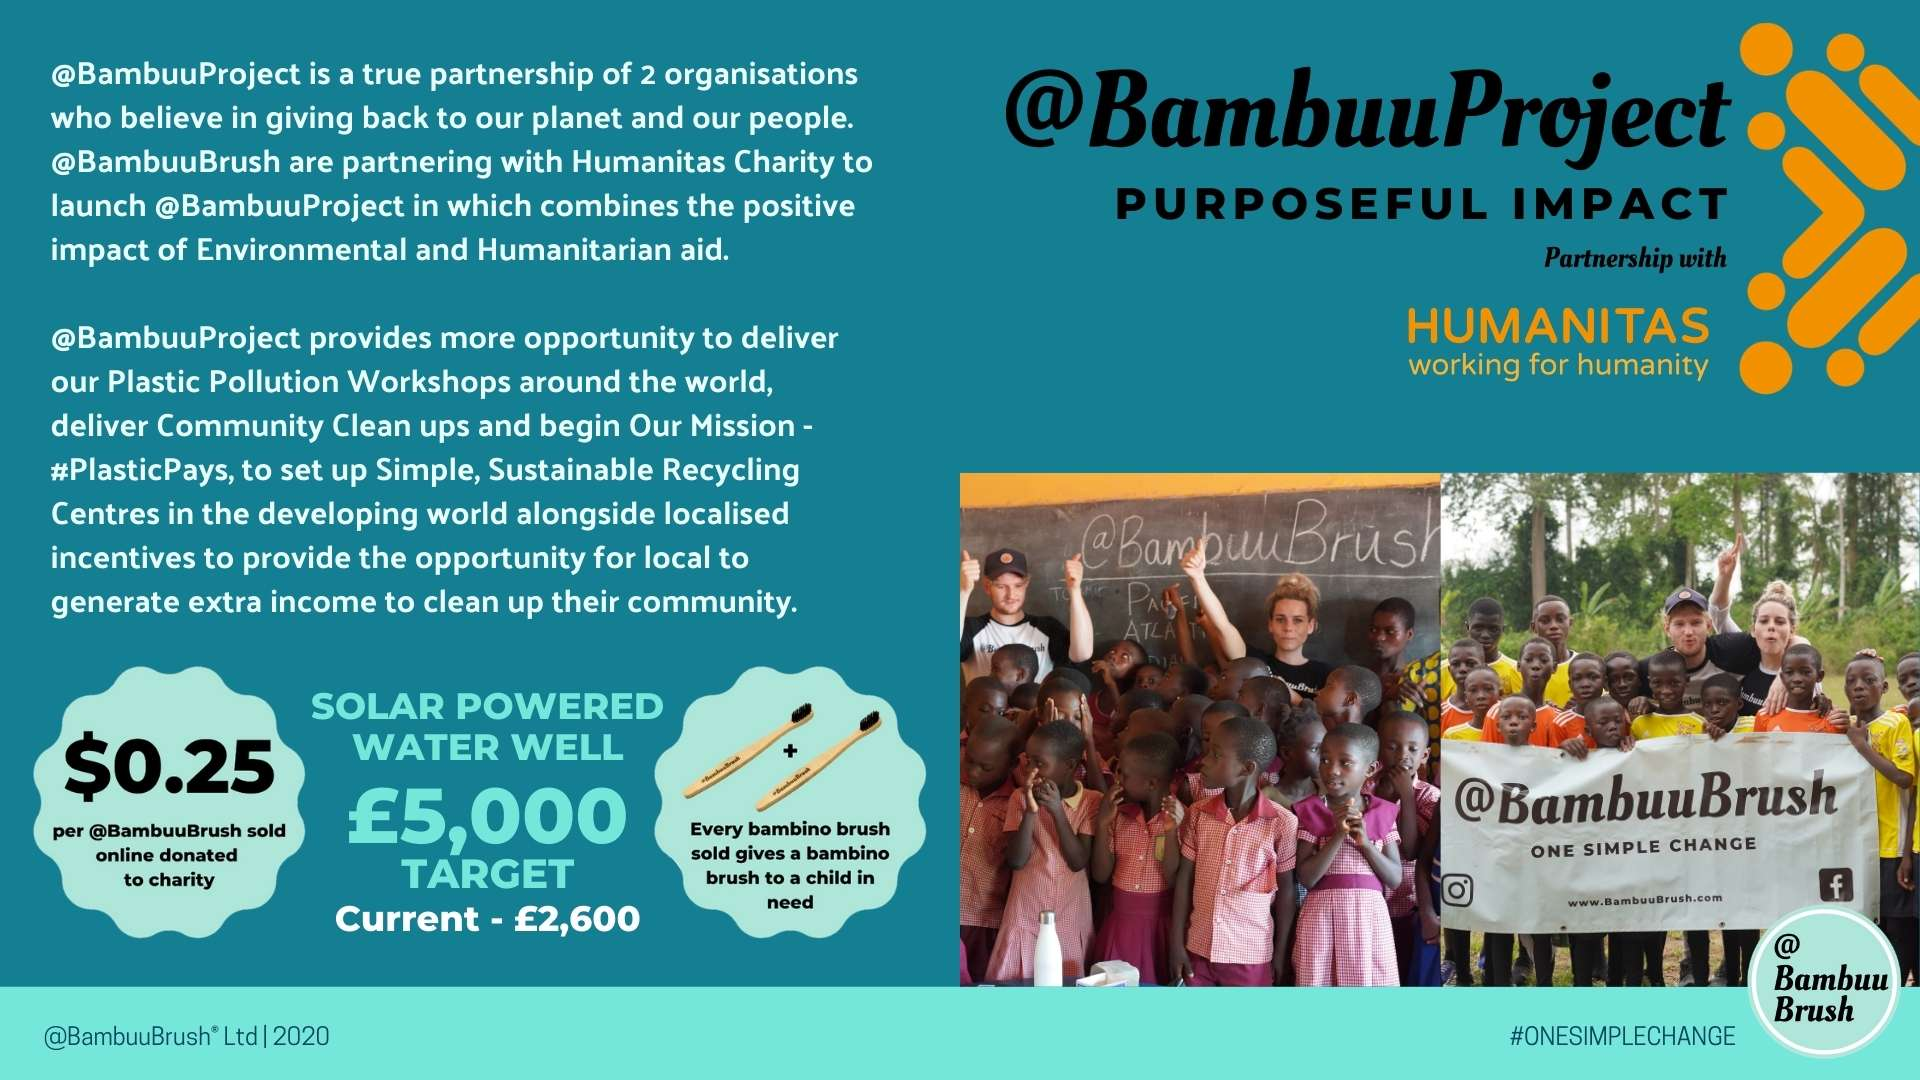 Humanitarian Aid - Environmental Aid - @BambuuProject